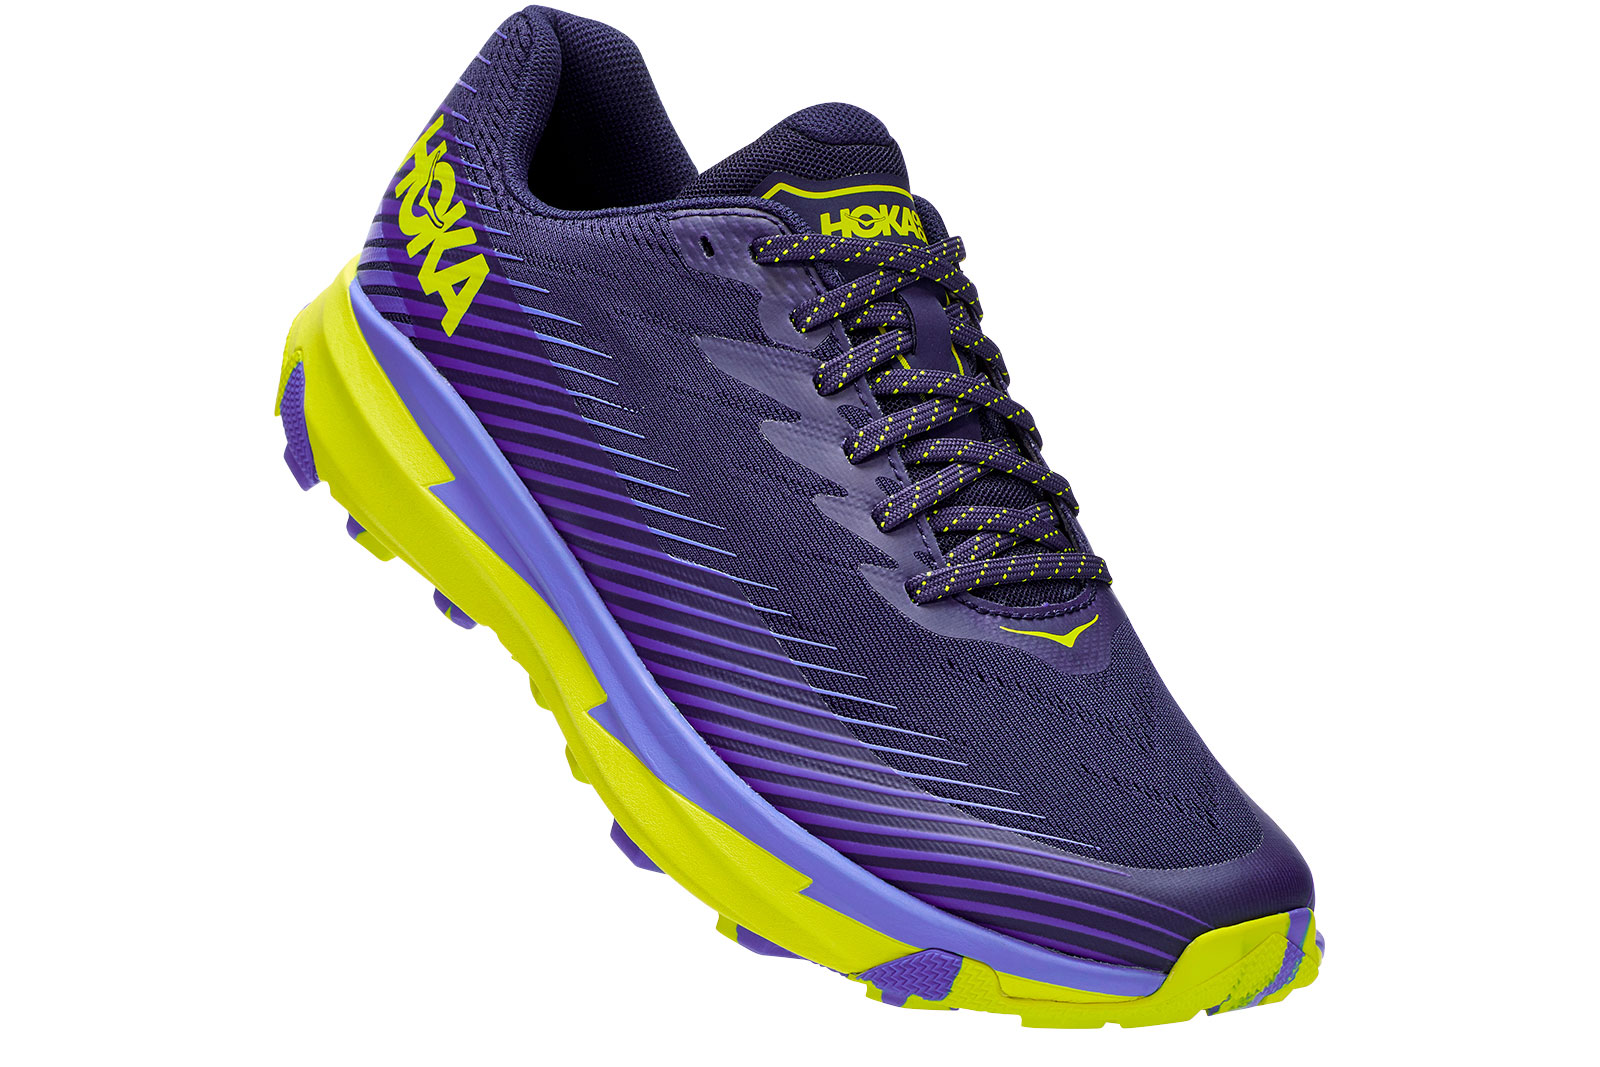 Hoka One One Torrent 2 running shoe